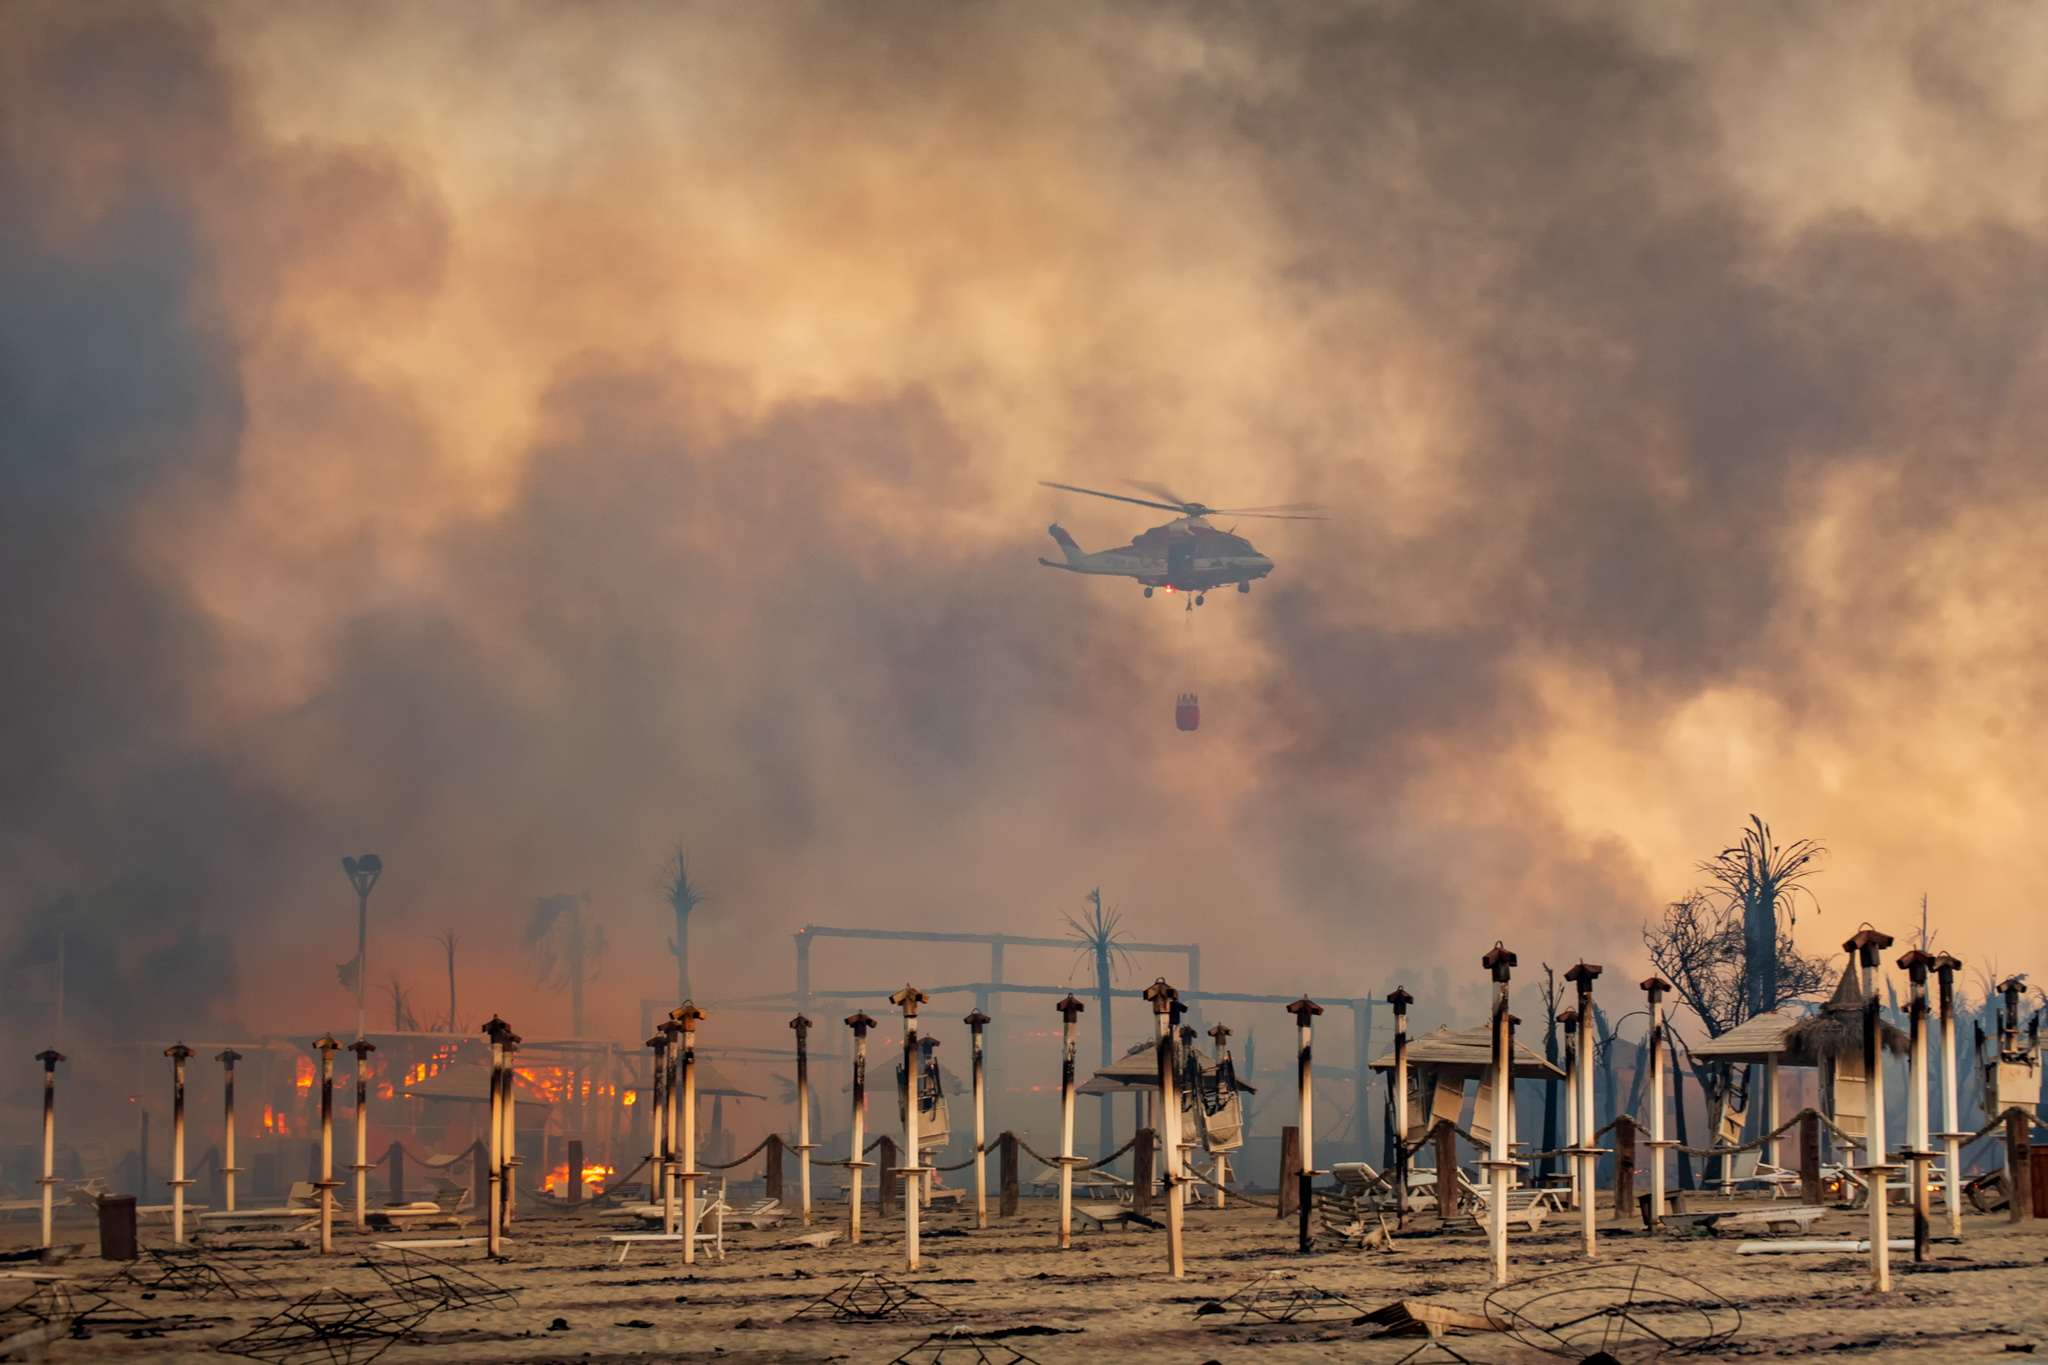 A helicopter flies above a fire at Le Capannine beach in Catania, Sicily, Italy, July 30, 2021, in this photo obtained from social media on July 31, 2021.  Roberto Viglianisi/via REUTERS